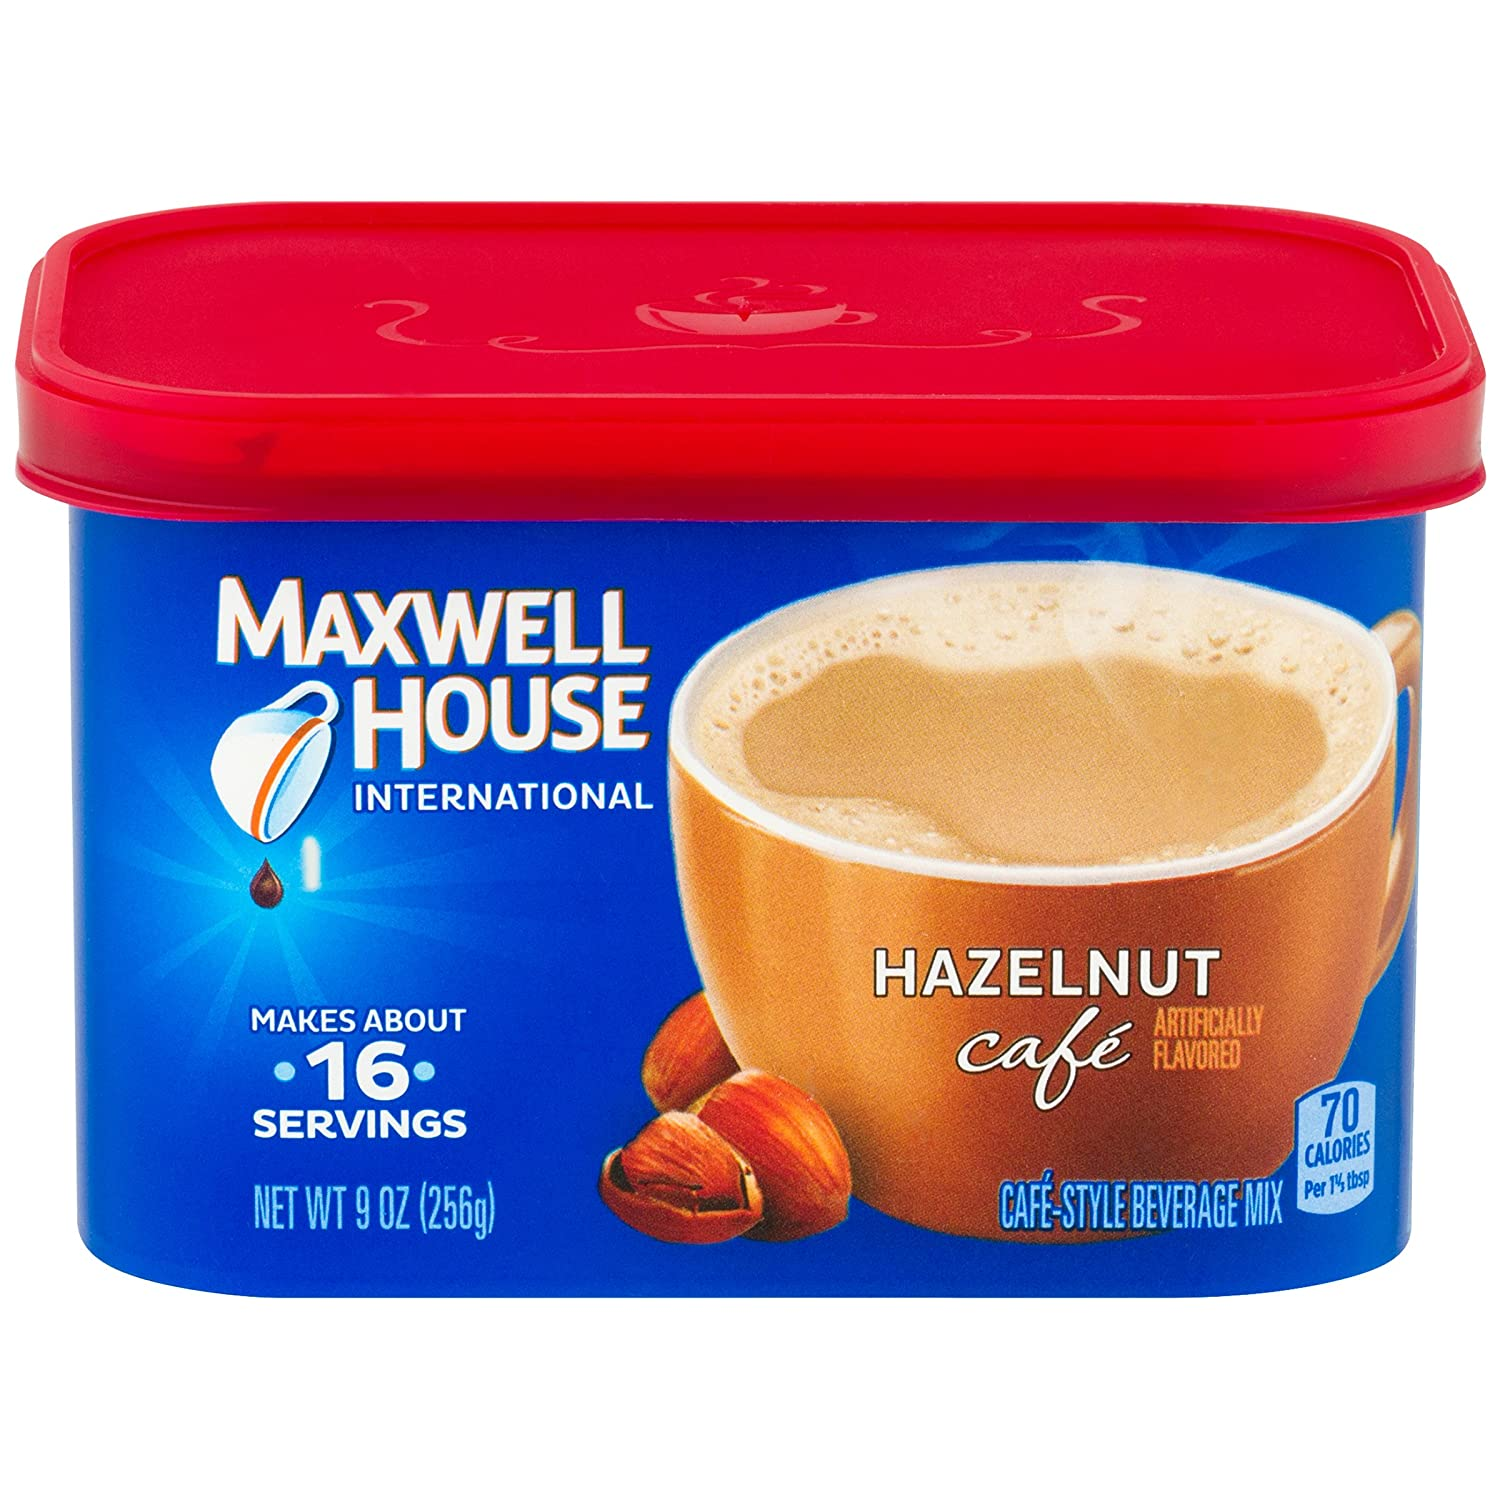 Maxwell House International Cafe Hazelnut Instant Coffee (9 oz Canisters, Pack of 4)